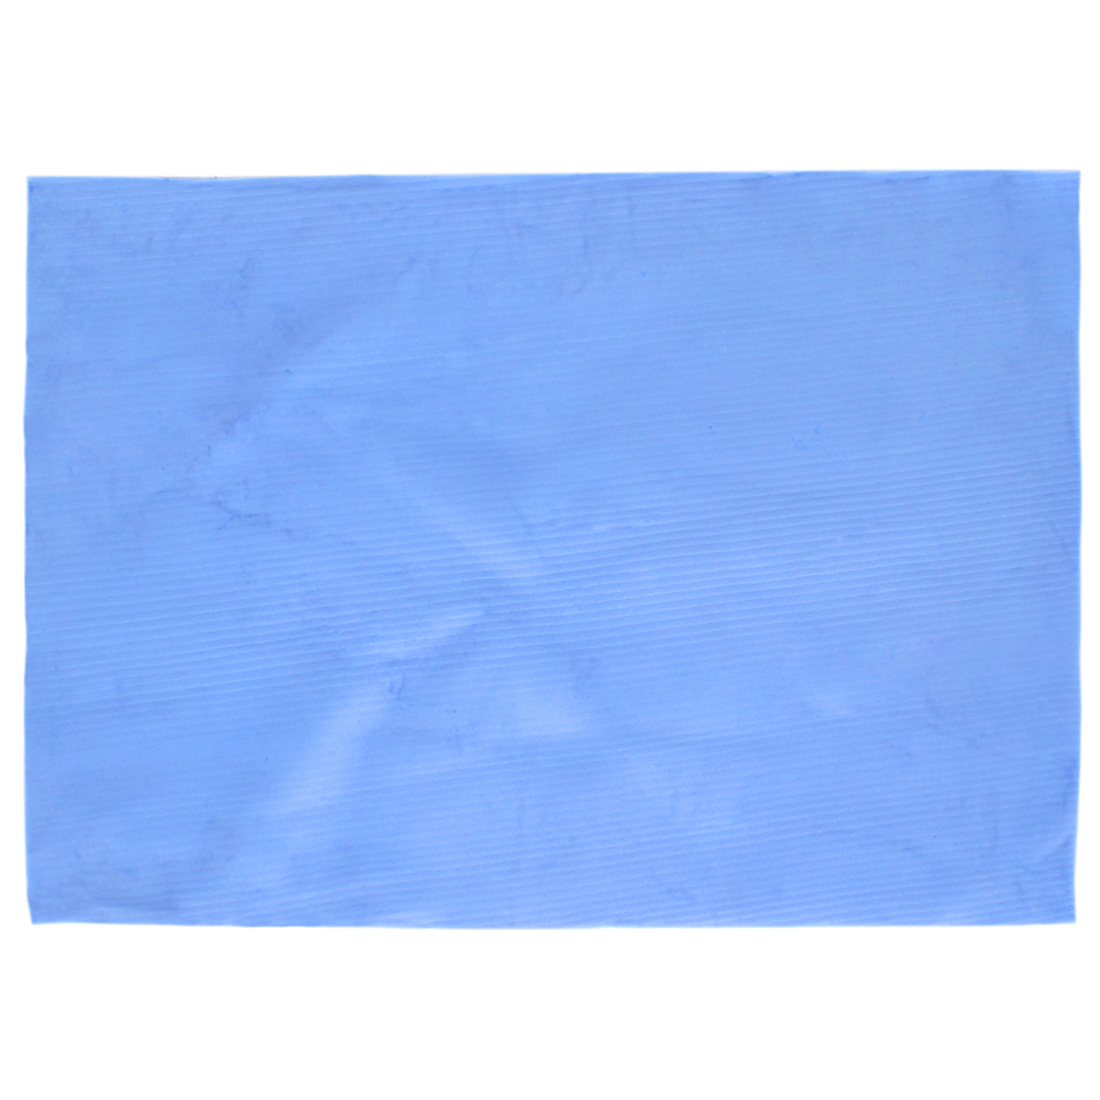 Synthetic Sports Bath Makeup Cleaning Cloth Absorbent Drying Magic Towel Blue